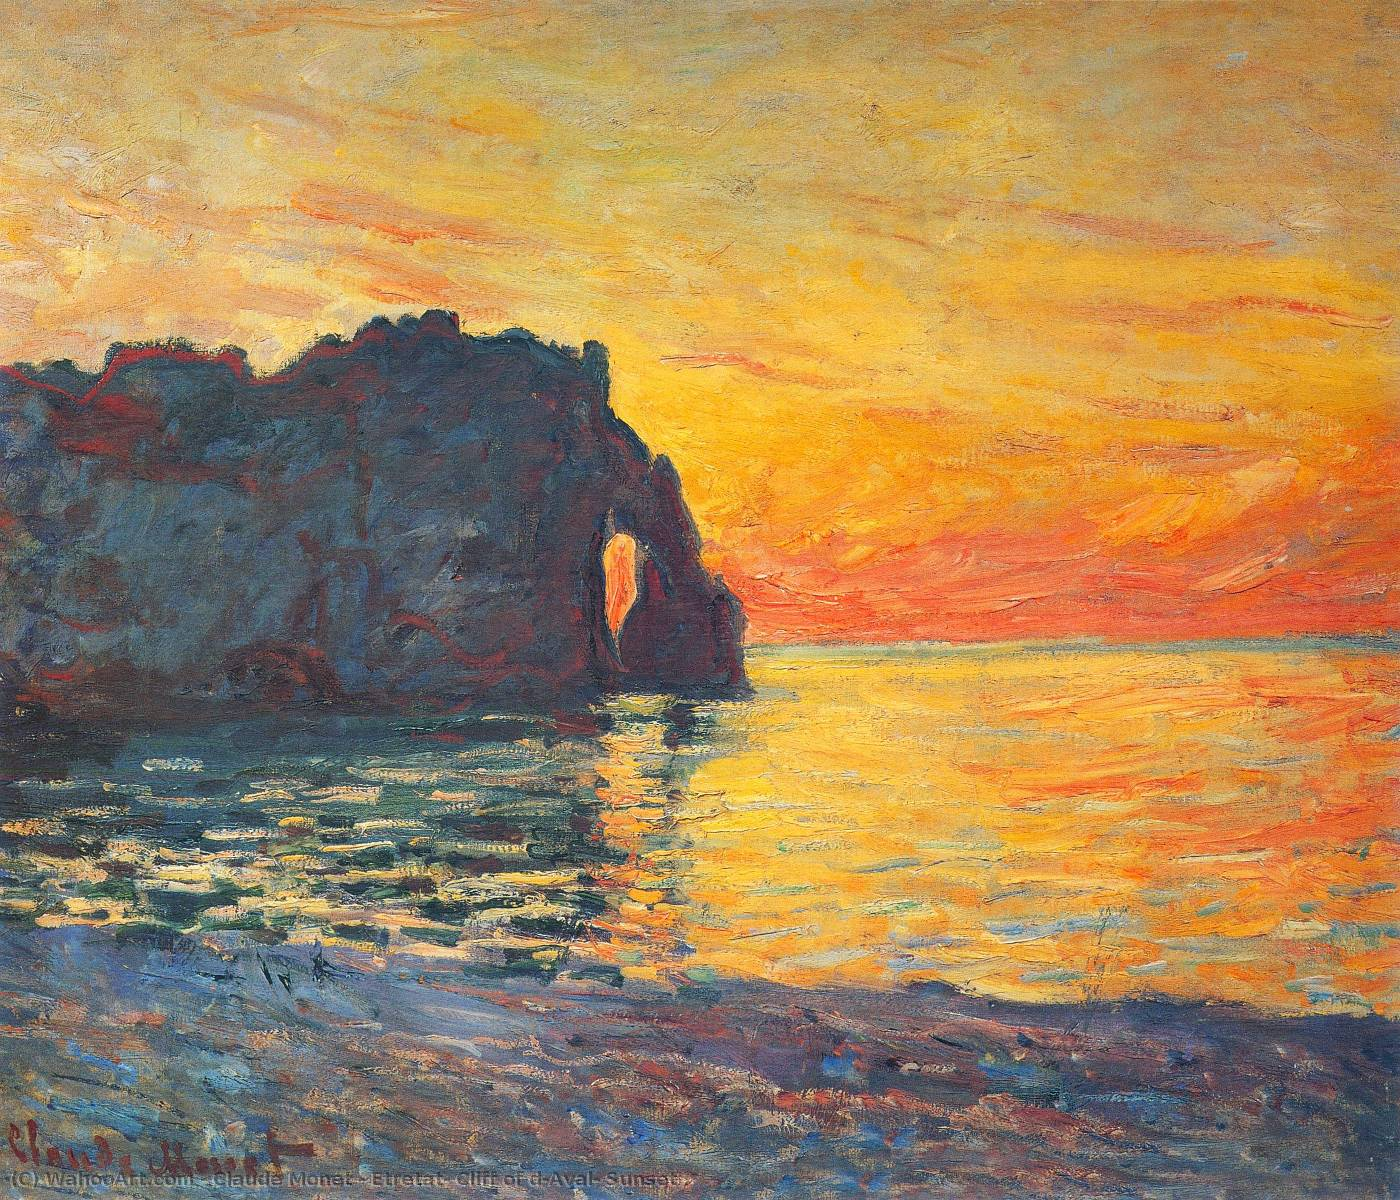 Etretat, Cliff of d`Aval, Sunset, 1885 by Claude Monet (1840-1926, France) | Oil Painting | WahooArt.com